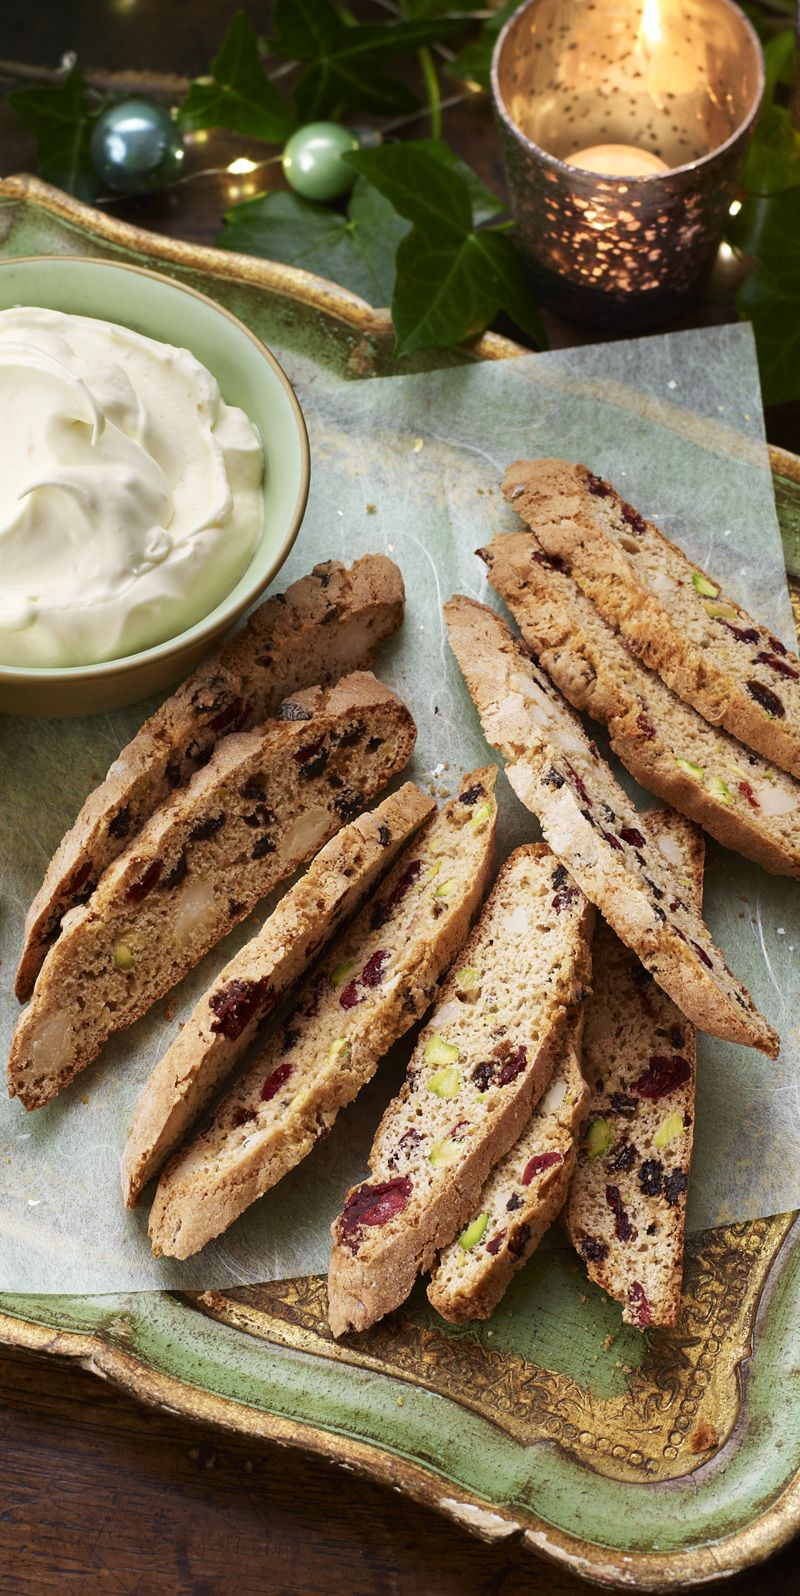 Резултат со слика за Spiced biscotti with an orange syllabub dip